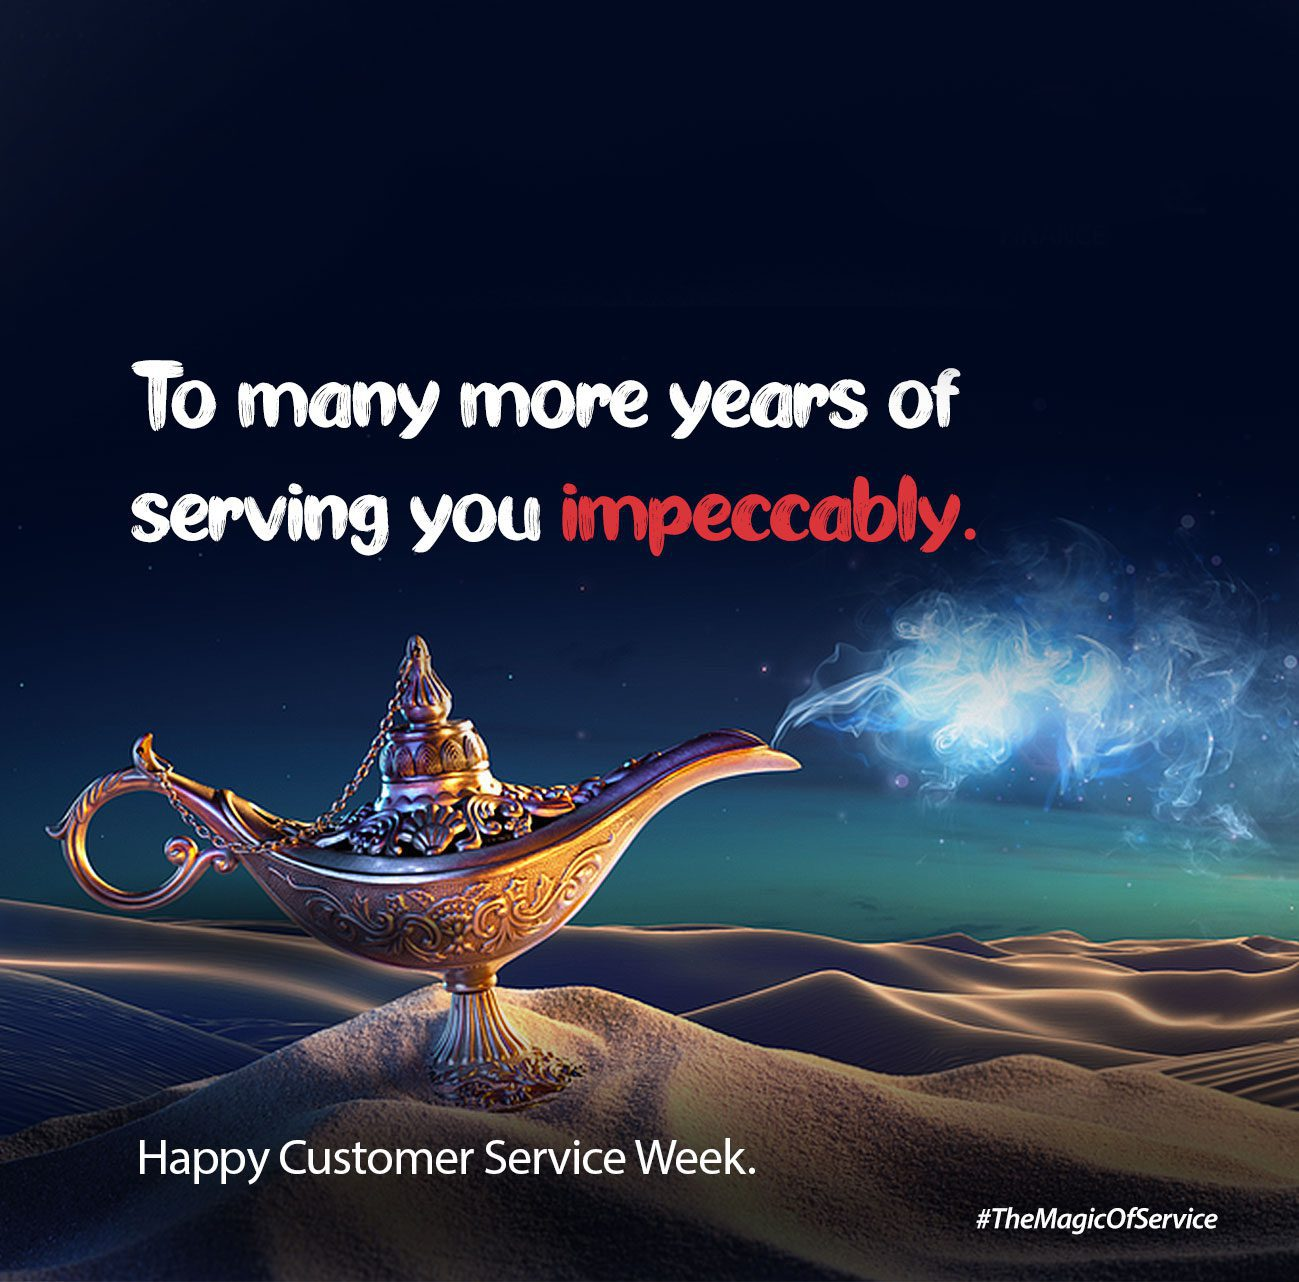 Happy Customer Service Week